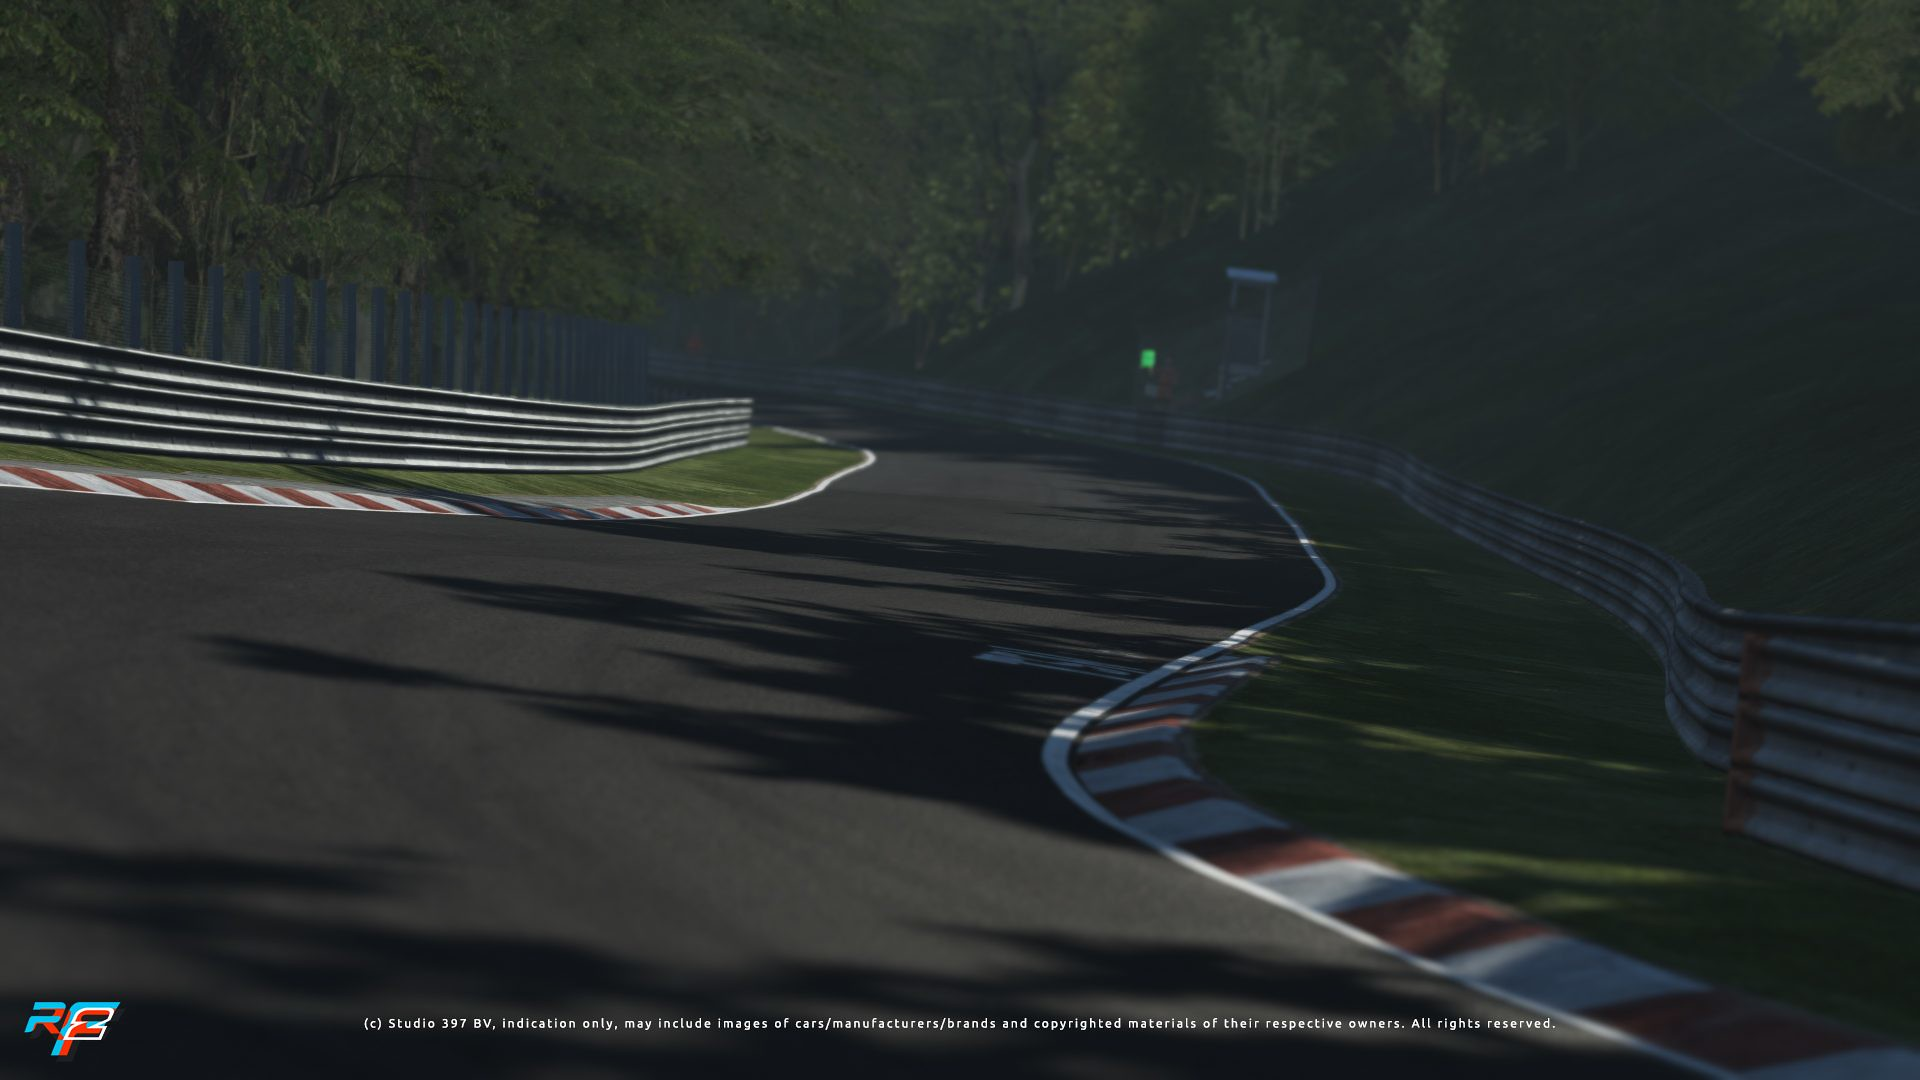 nordschleife_guide_13-1920x1080